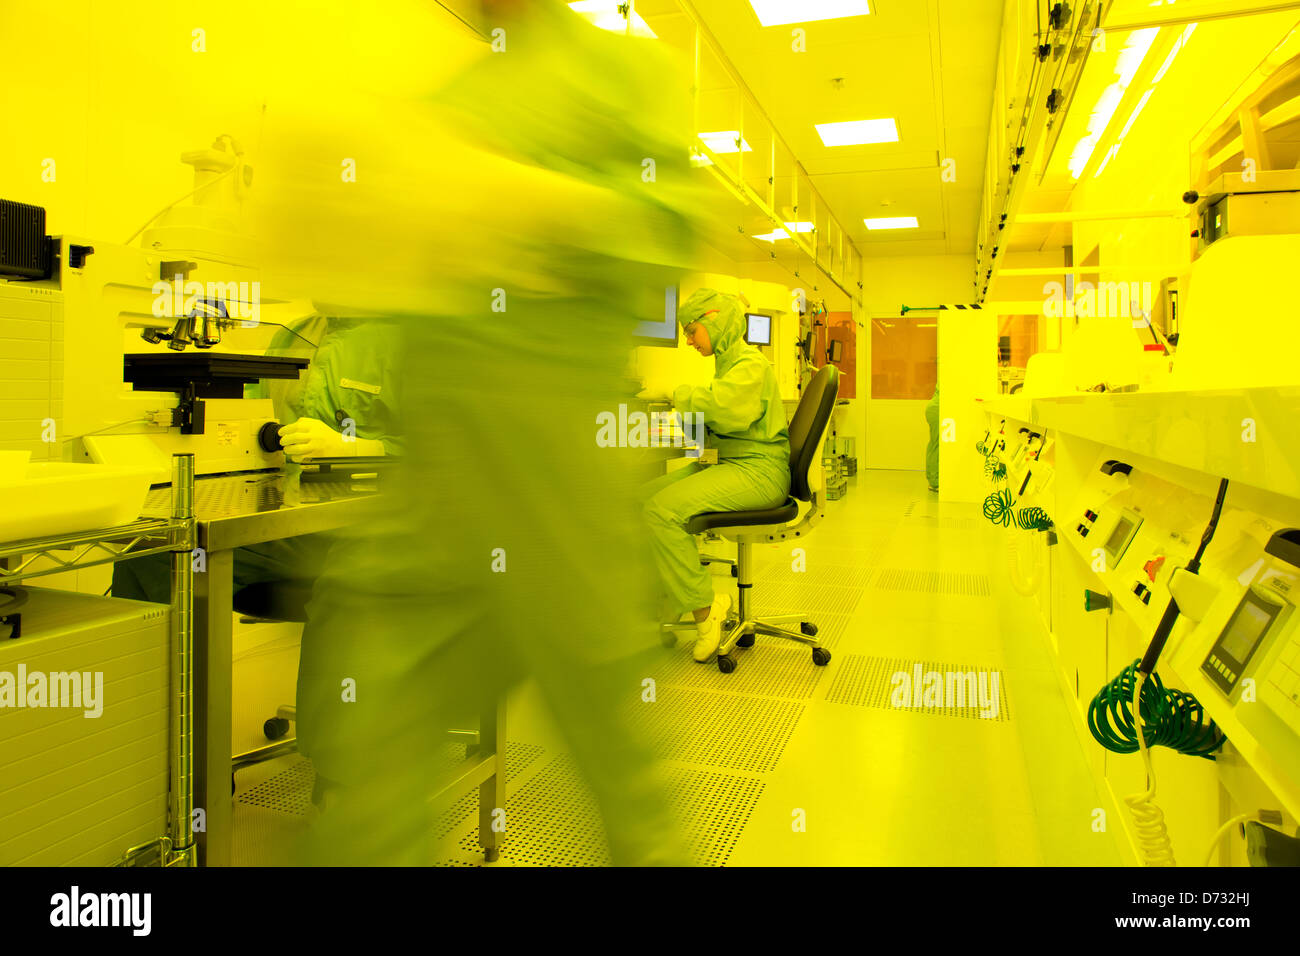 Dortmund, Germany, scientists at iX-factory work in the clean room - Stock Image